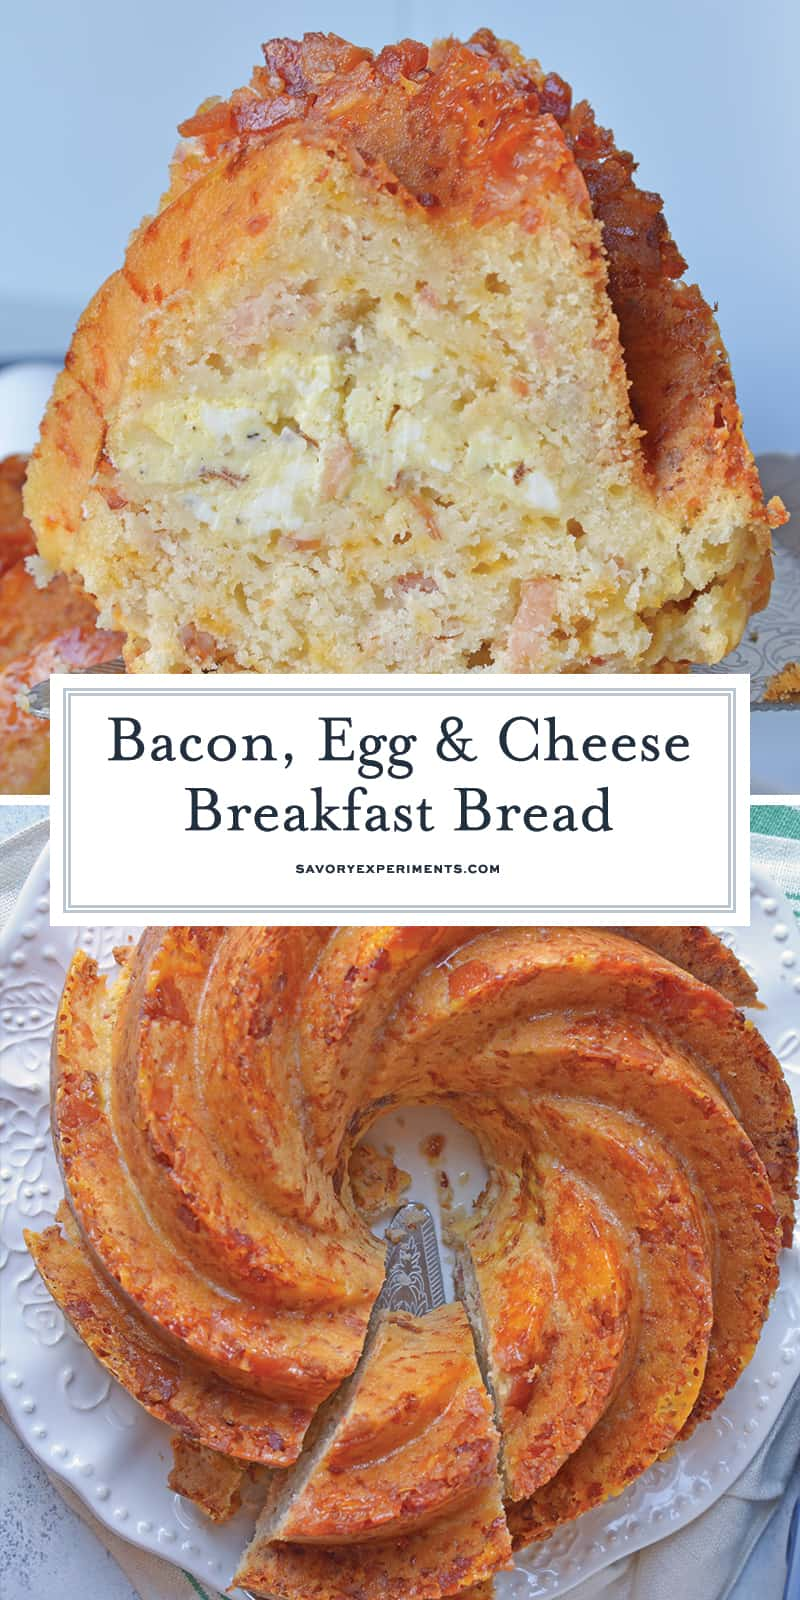 Bacon, Egg and Cheese Breakfast Bread is an easy breakfast recipe for feeding a large group. Prepare ingredients before and simply bake in the morning. #breakfastbread #easybreakfastrecipes www.savoryexperiments.com